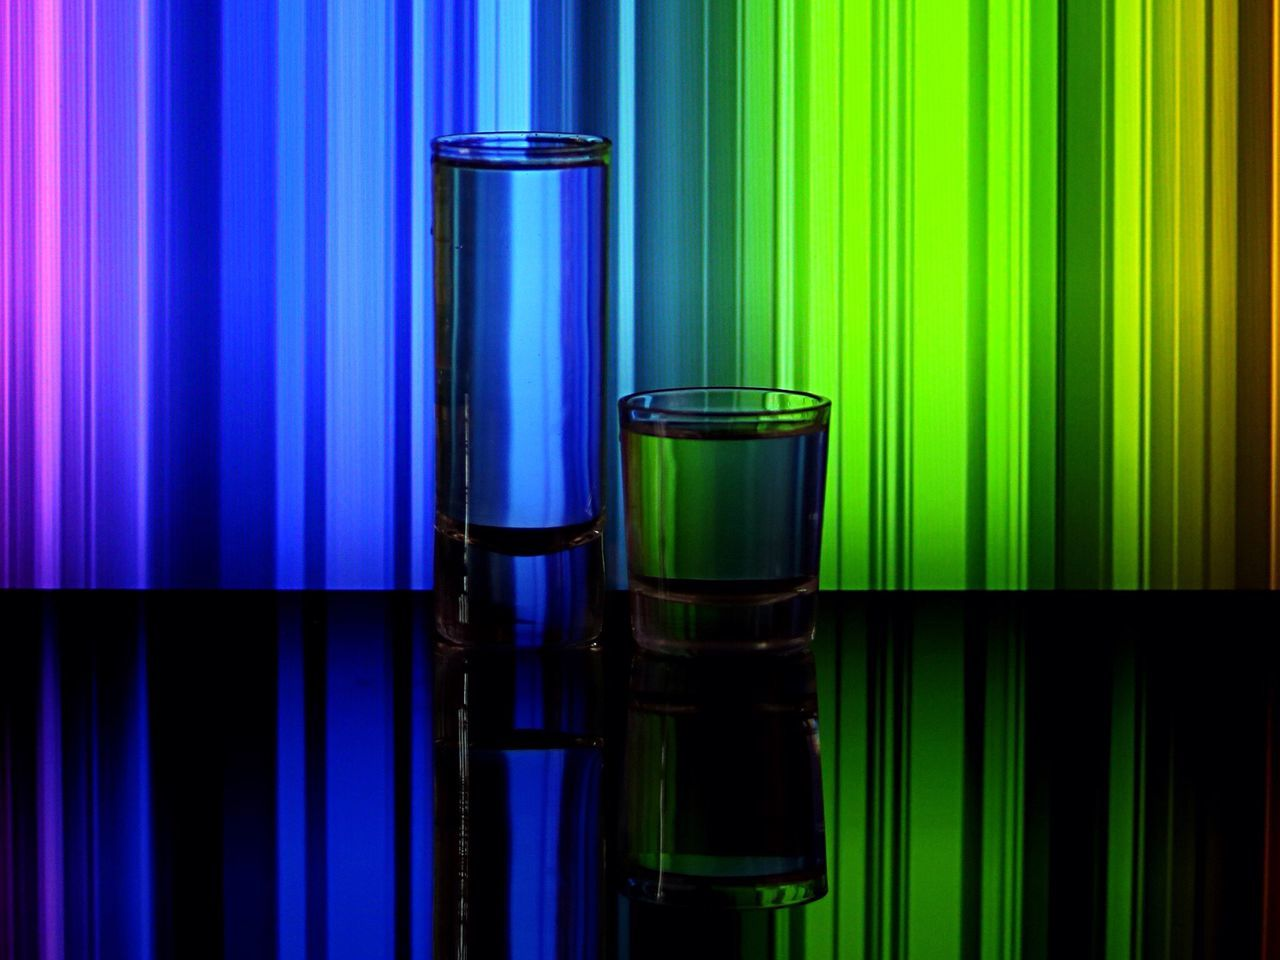 green color, no people, curtain, blue, backgrounds, multi colored, science, indoors, illuminated, close-up, scientific experiment, day